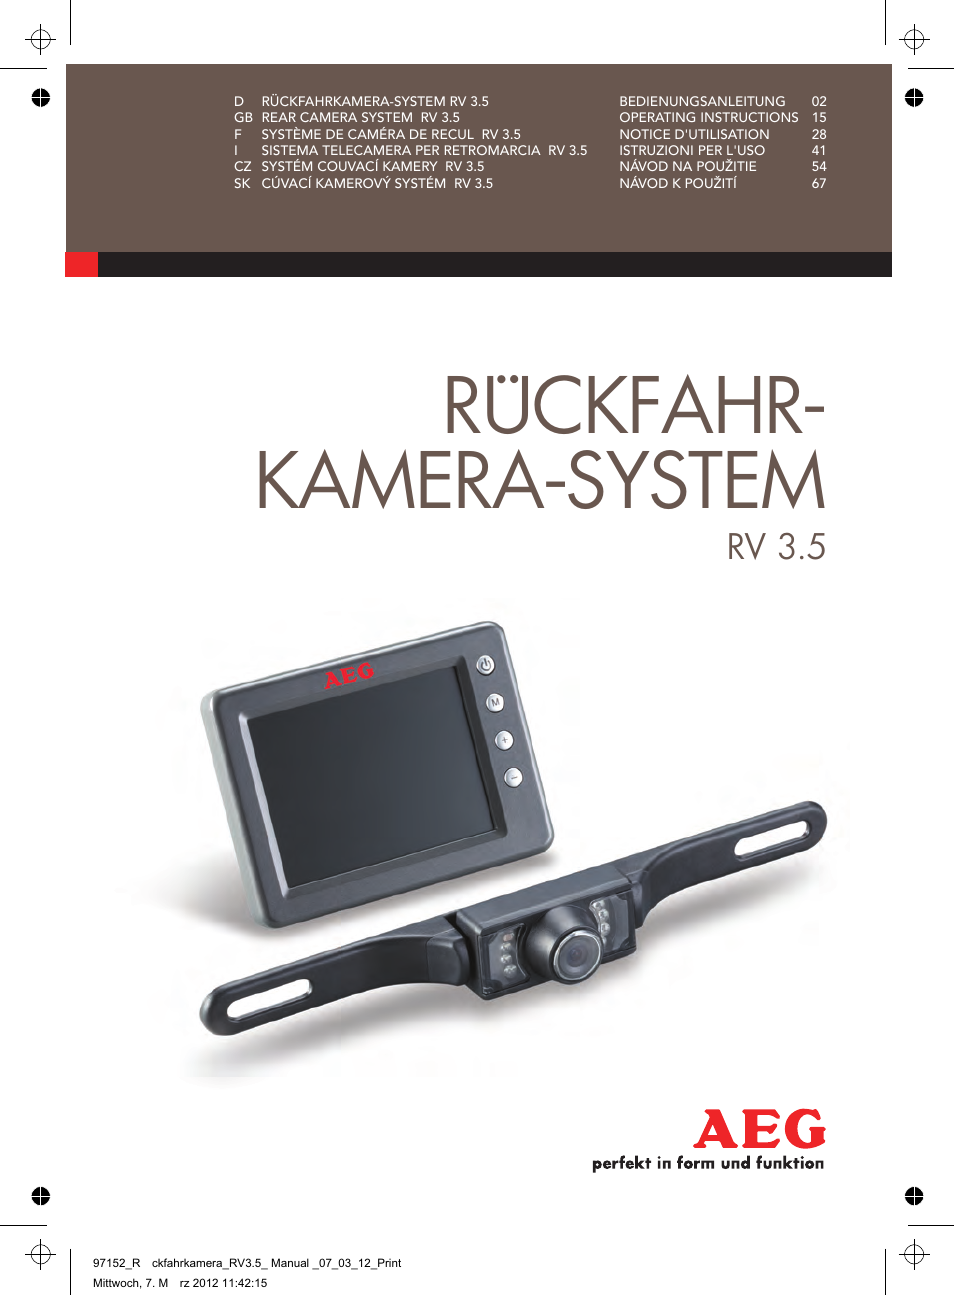 AEG Rear Camera System RV 3.5 User Manual | 80 pages